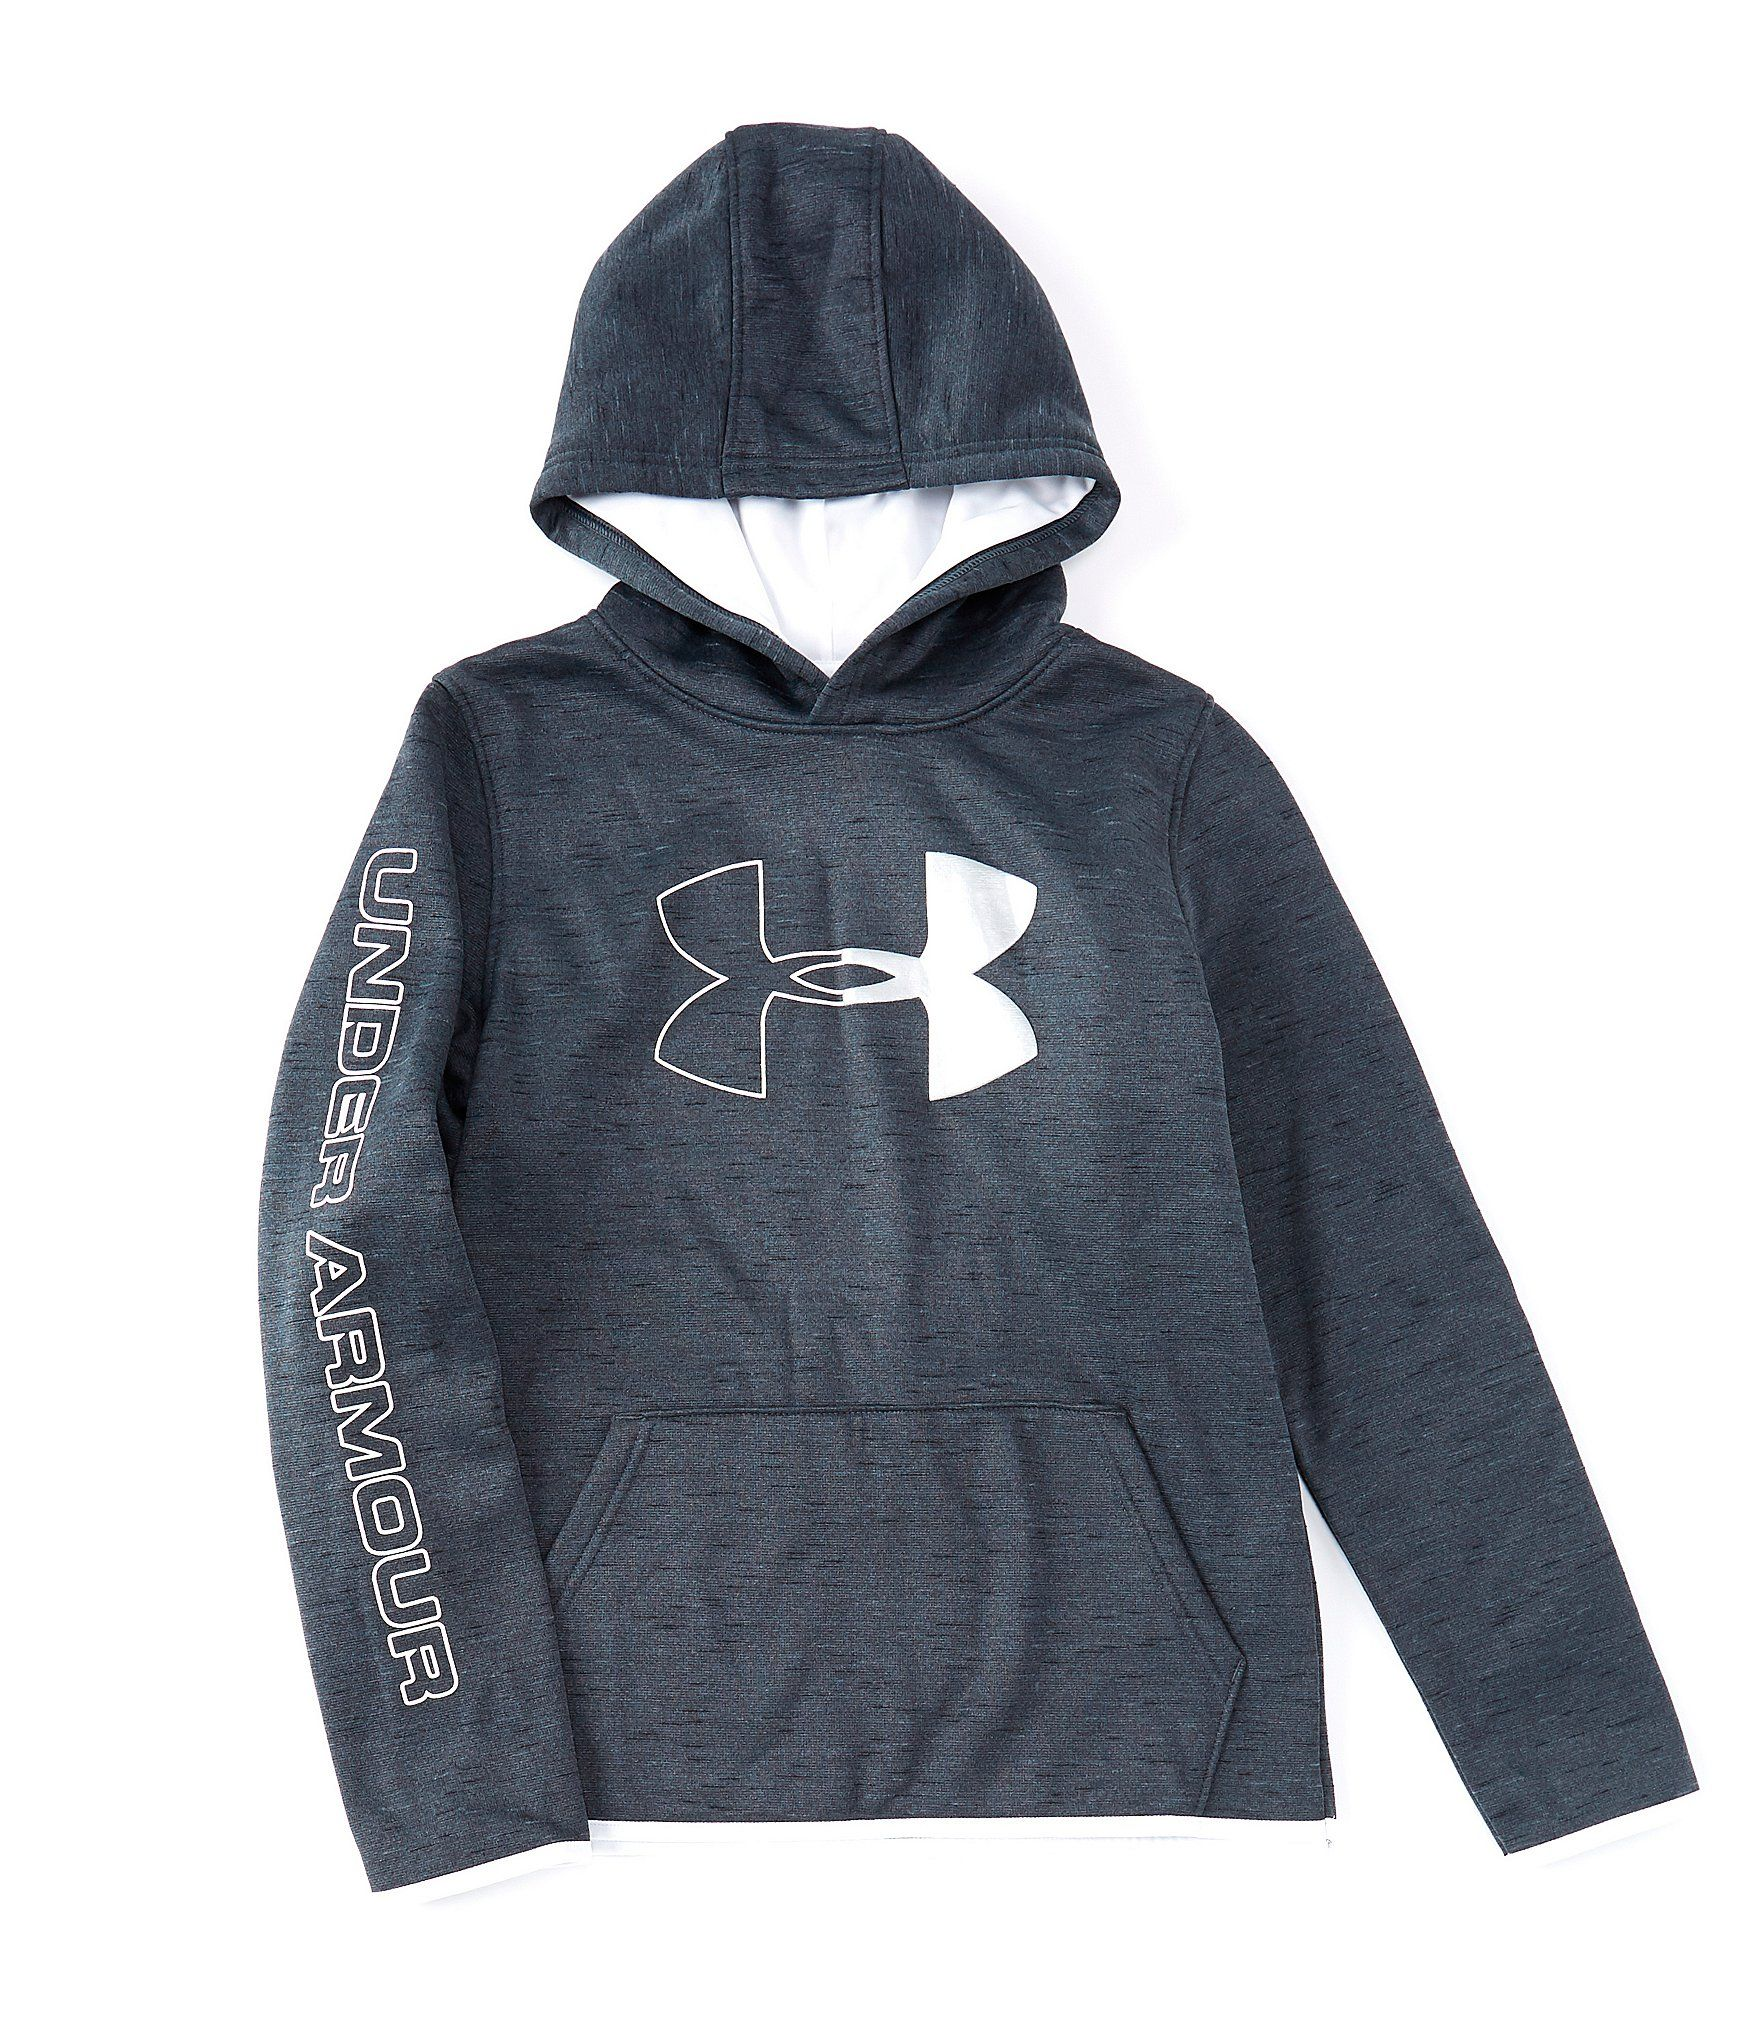 NEW Under Armour Fleece Branded Youth Hoodie White Black